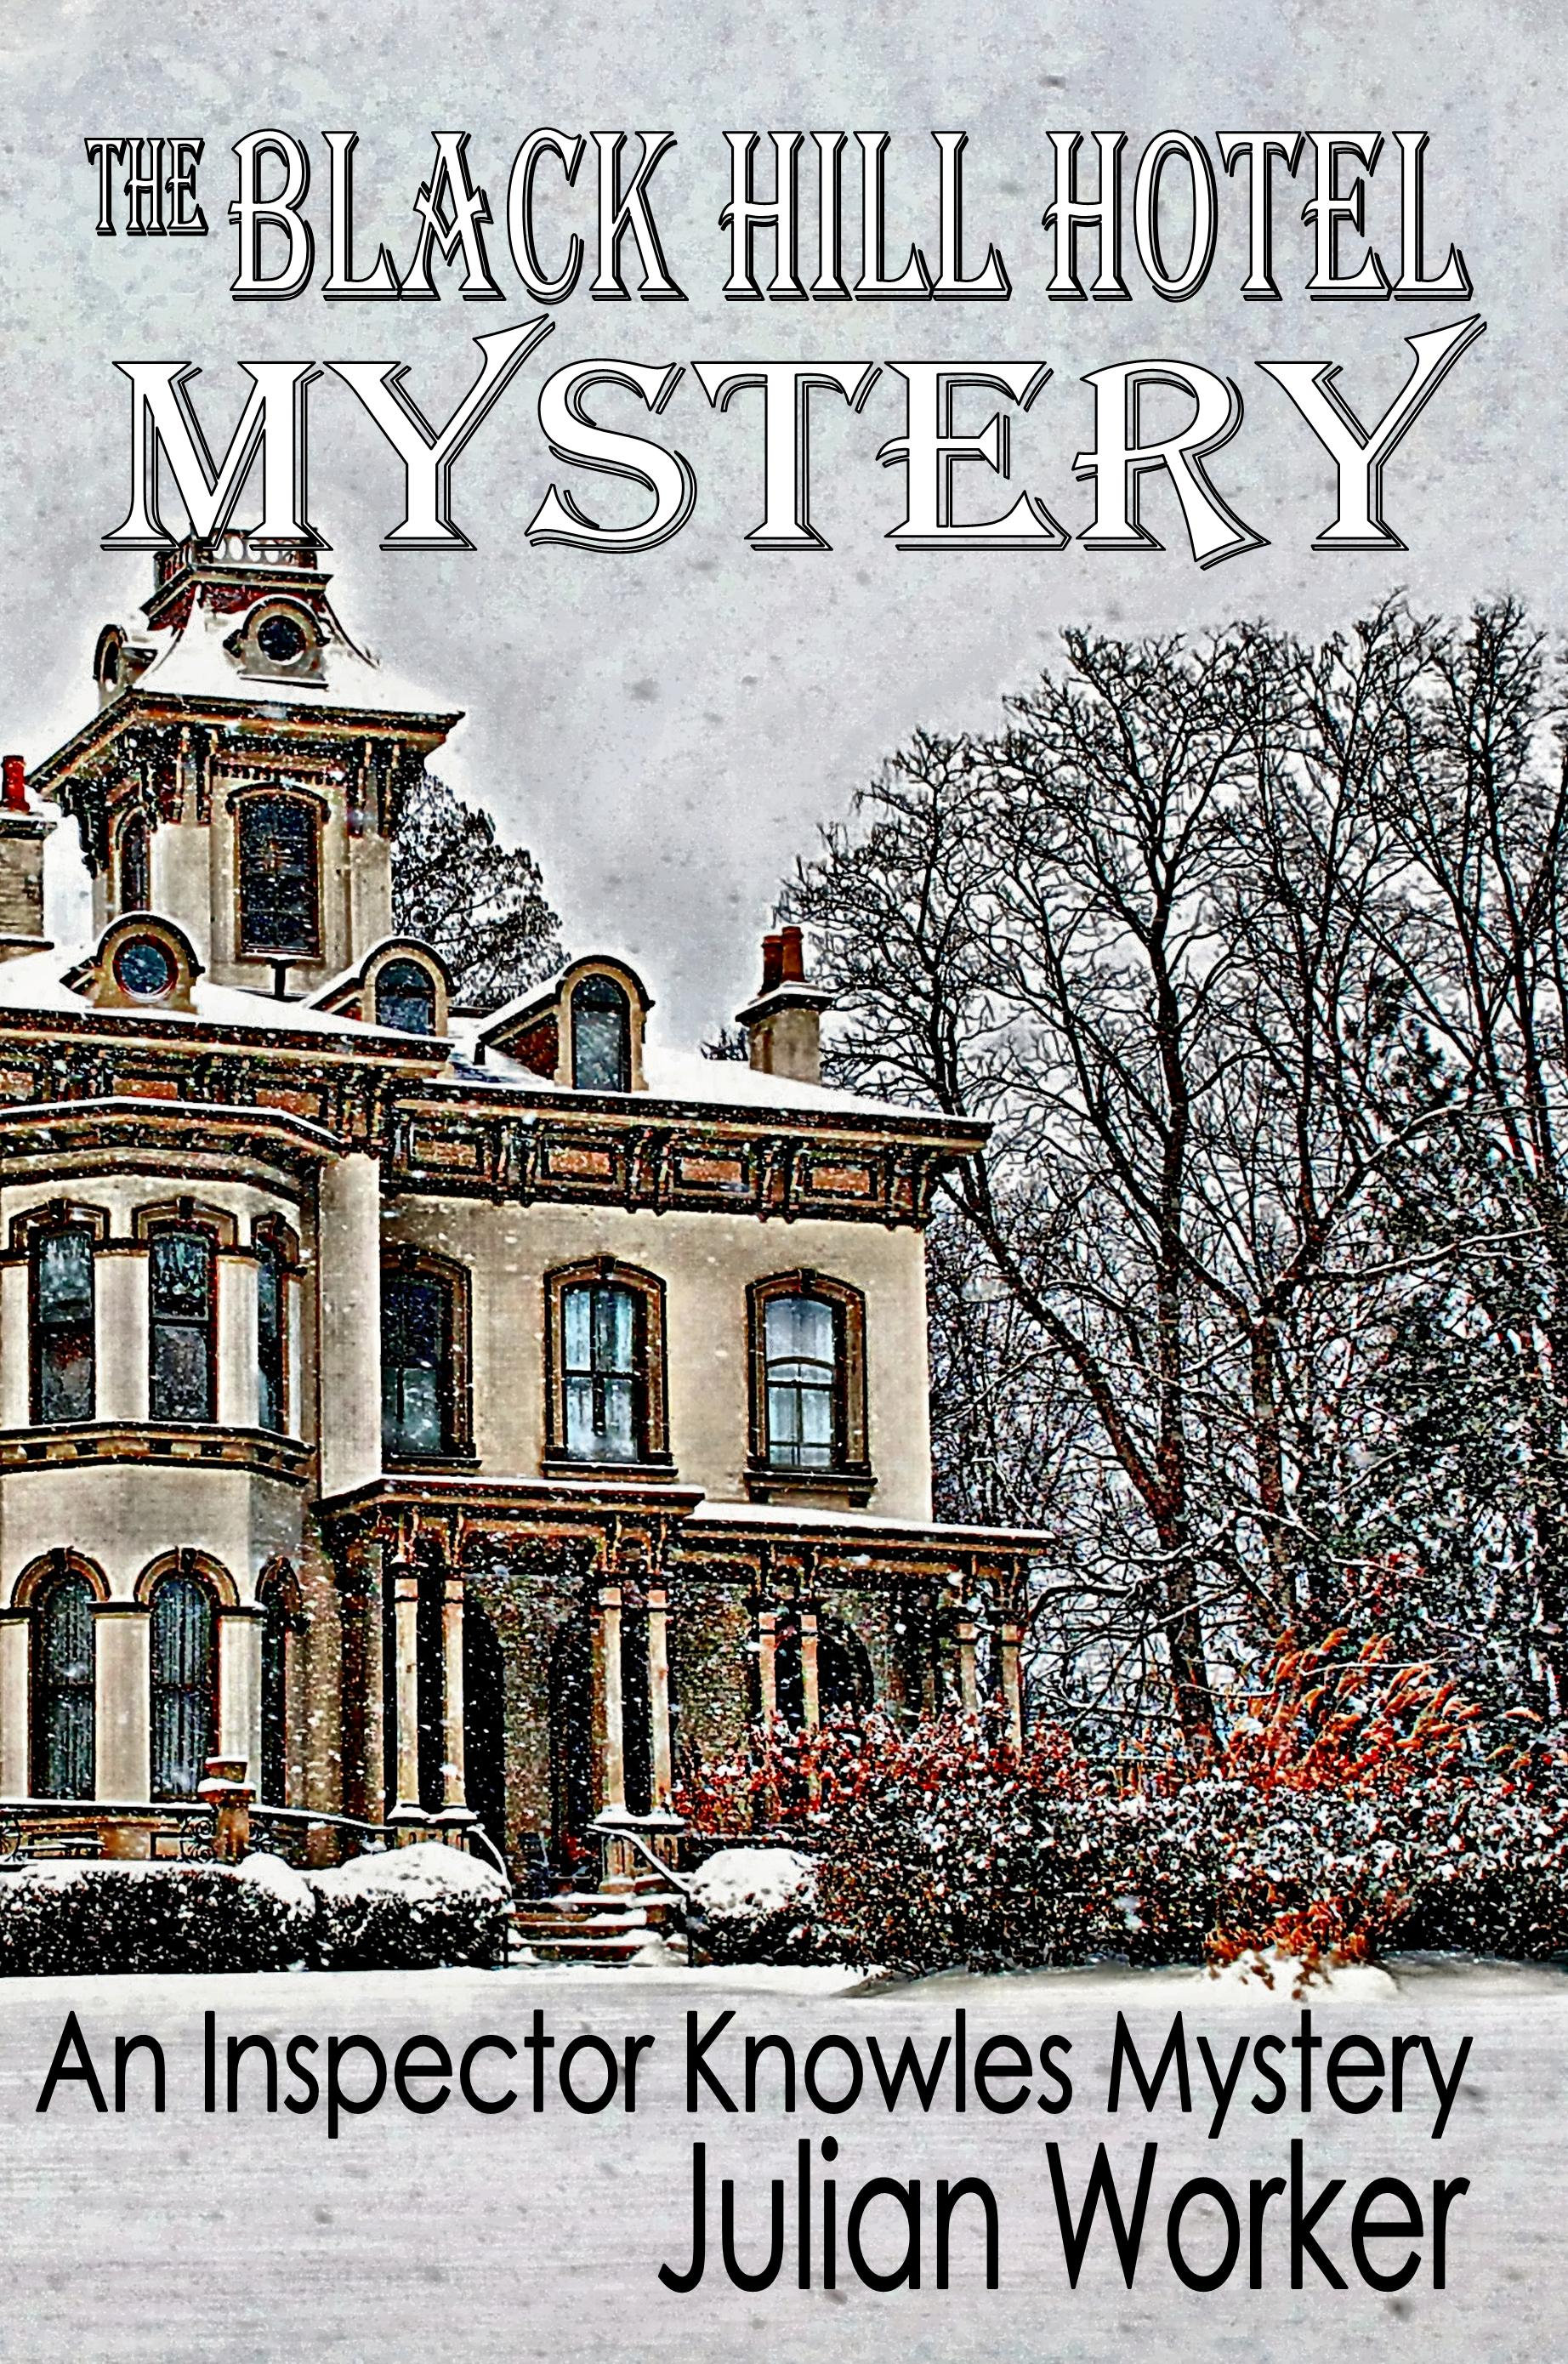 The Black Hill Hotel Mystery – 32